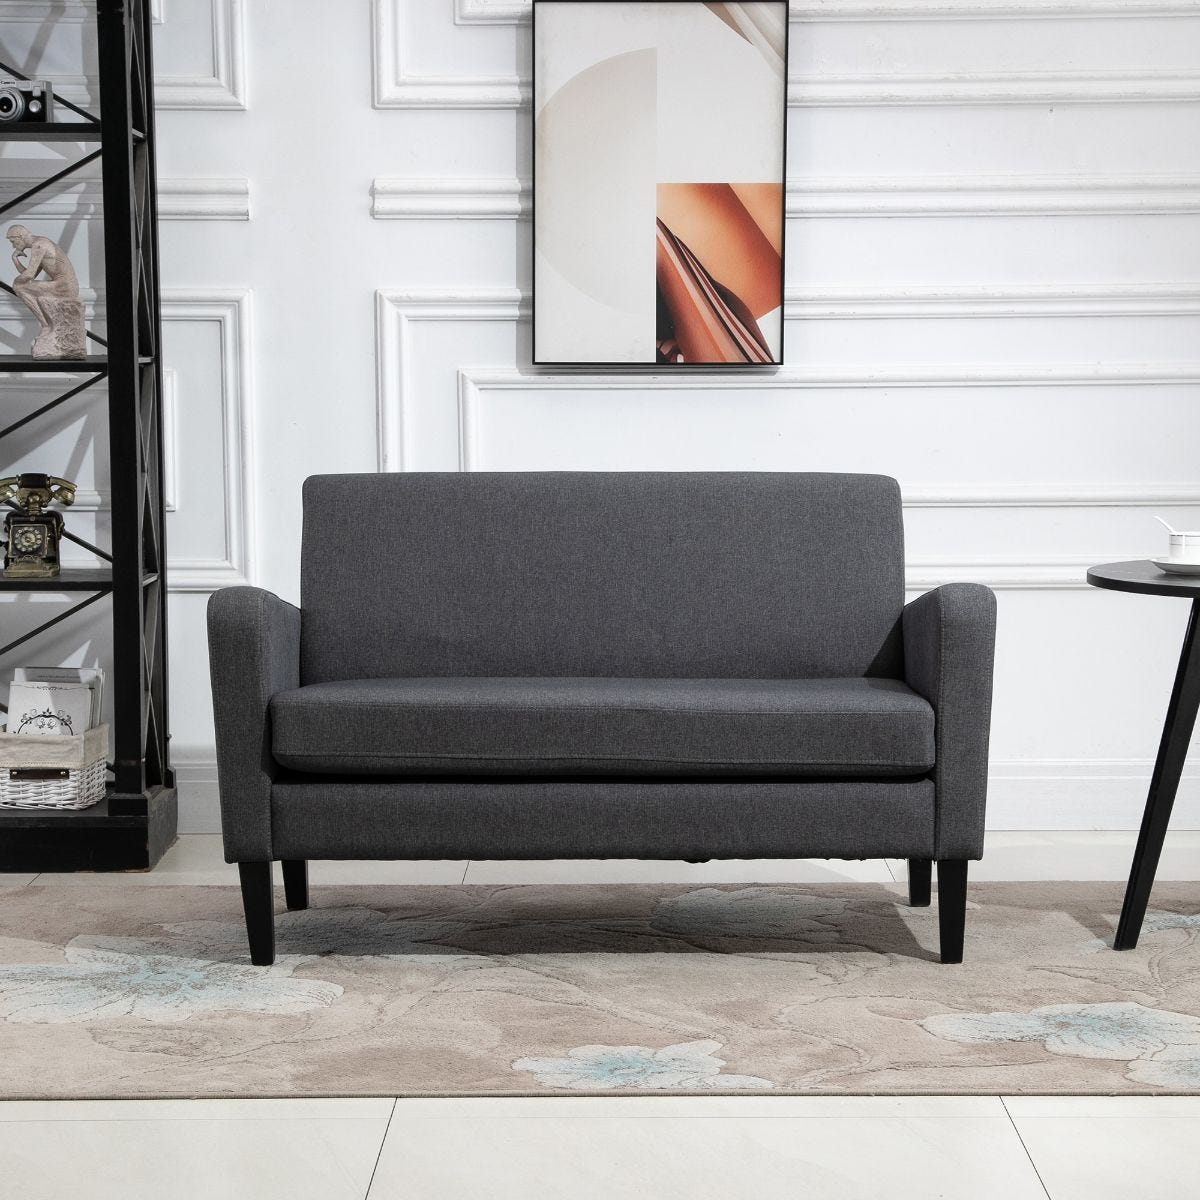 Linen Modern To Curved 2 Seater Sofa Loveseat With Wood Legs Grey